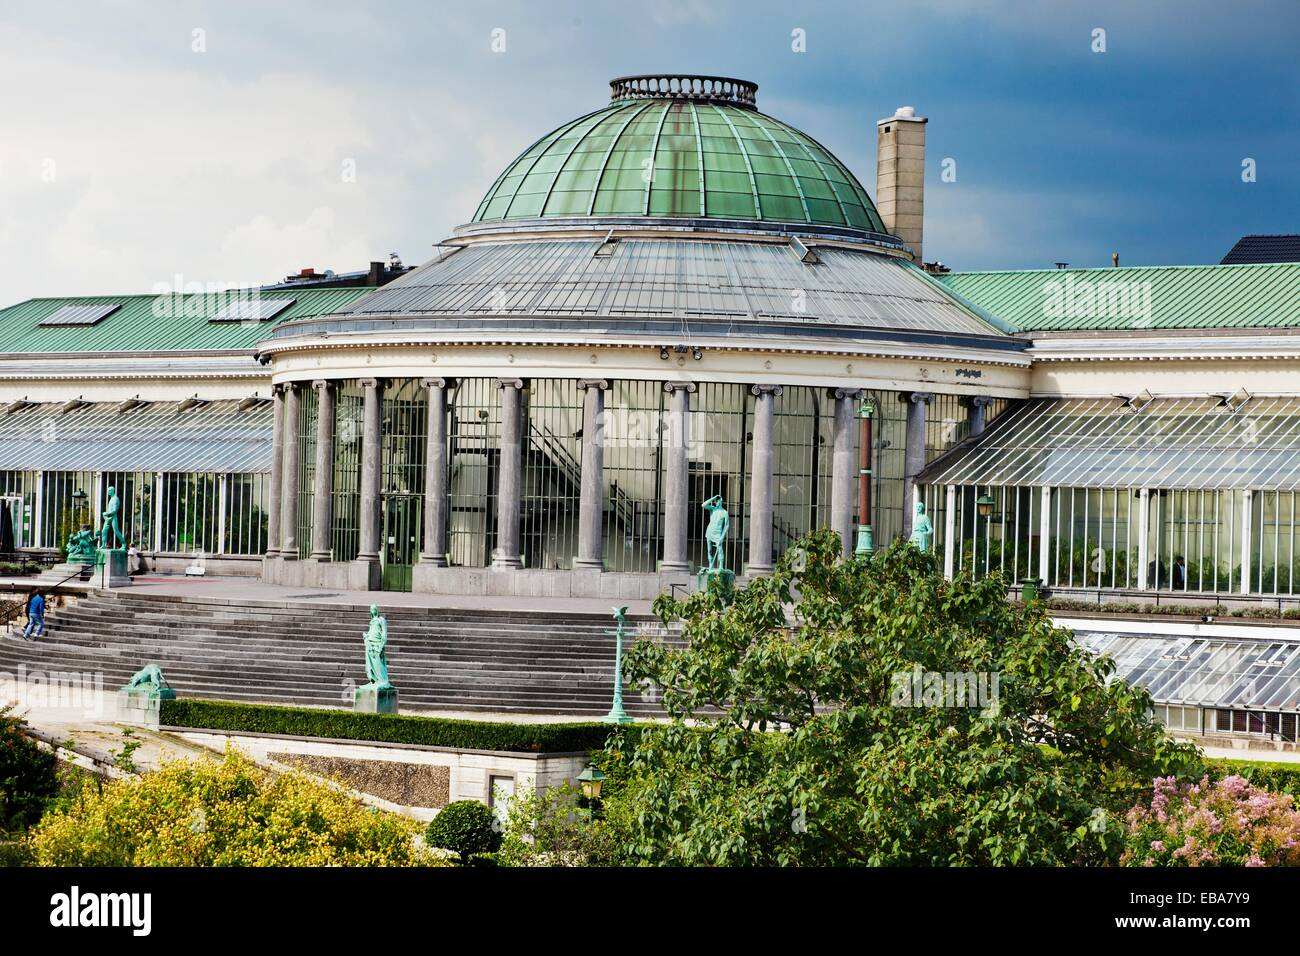 The Botanic, place for concerts and exhibitions, Bruxelles, Brussels, Belgium. - Stock Image